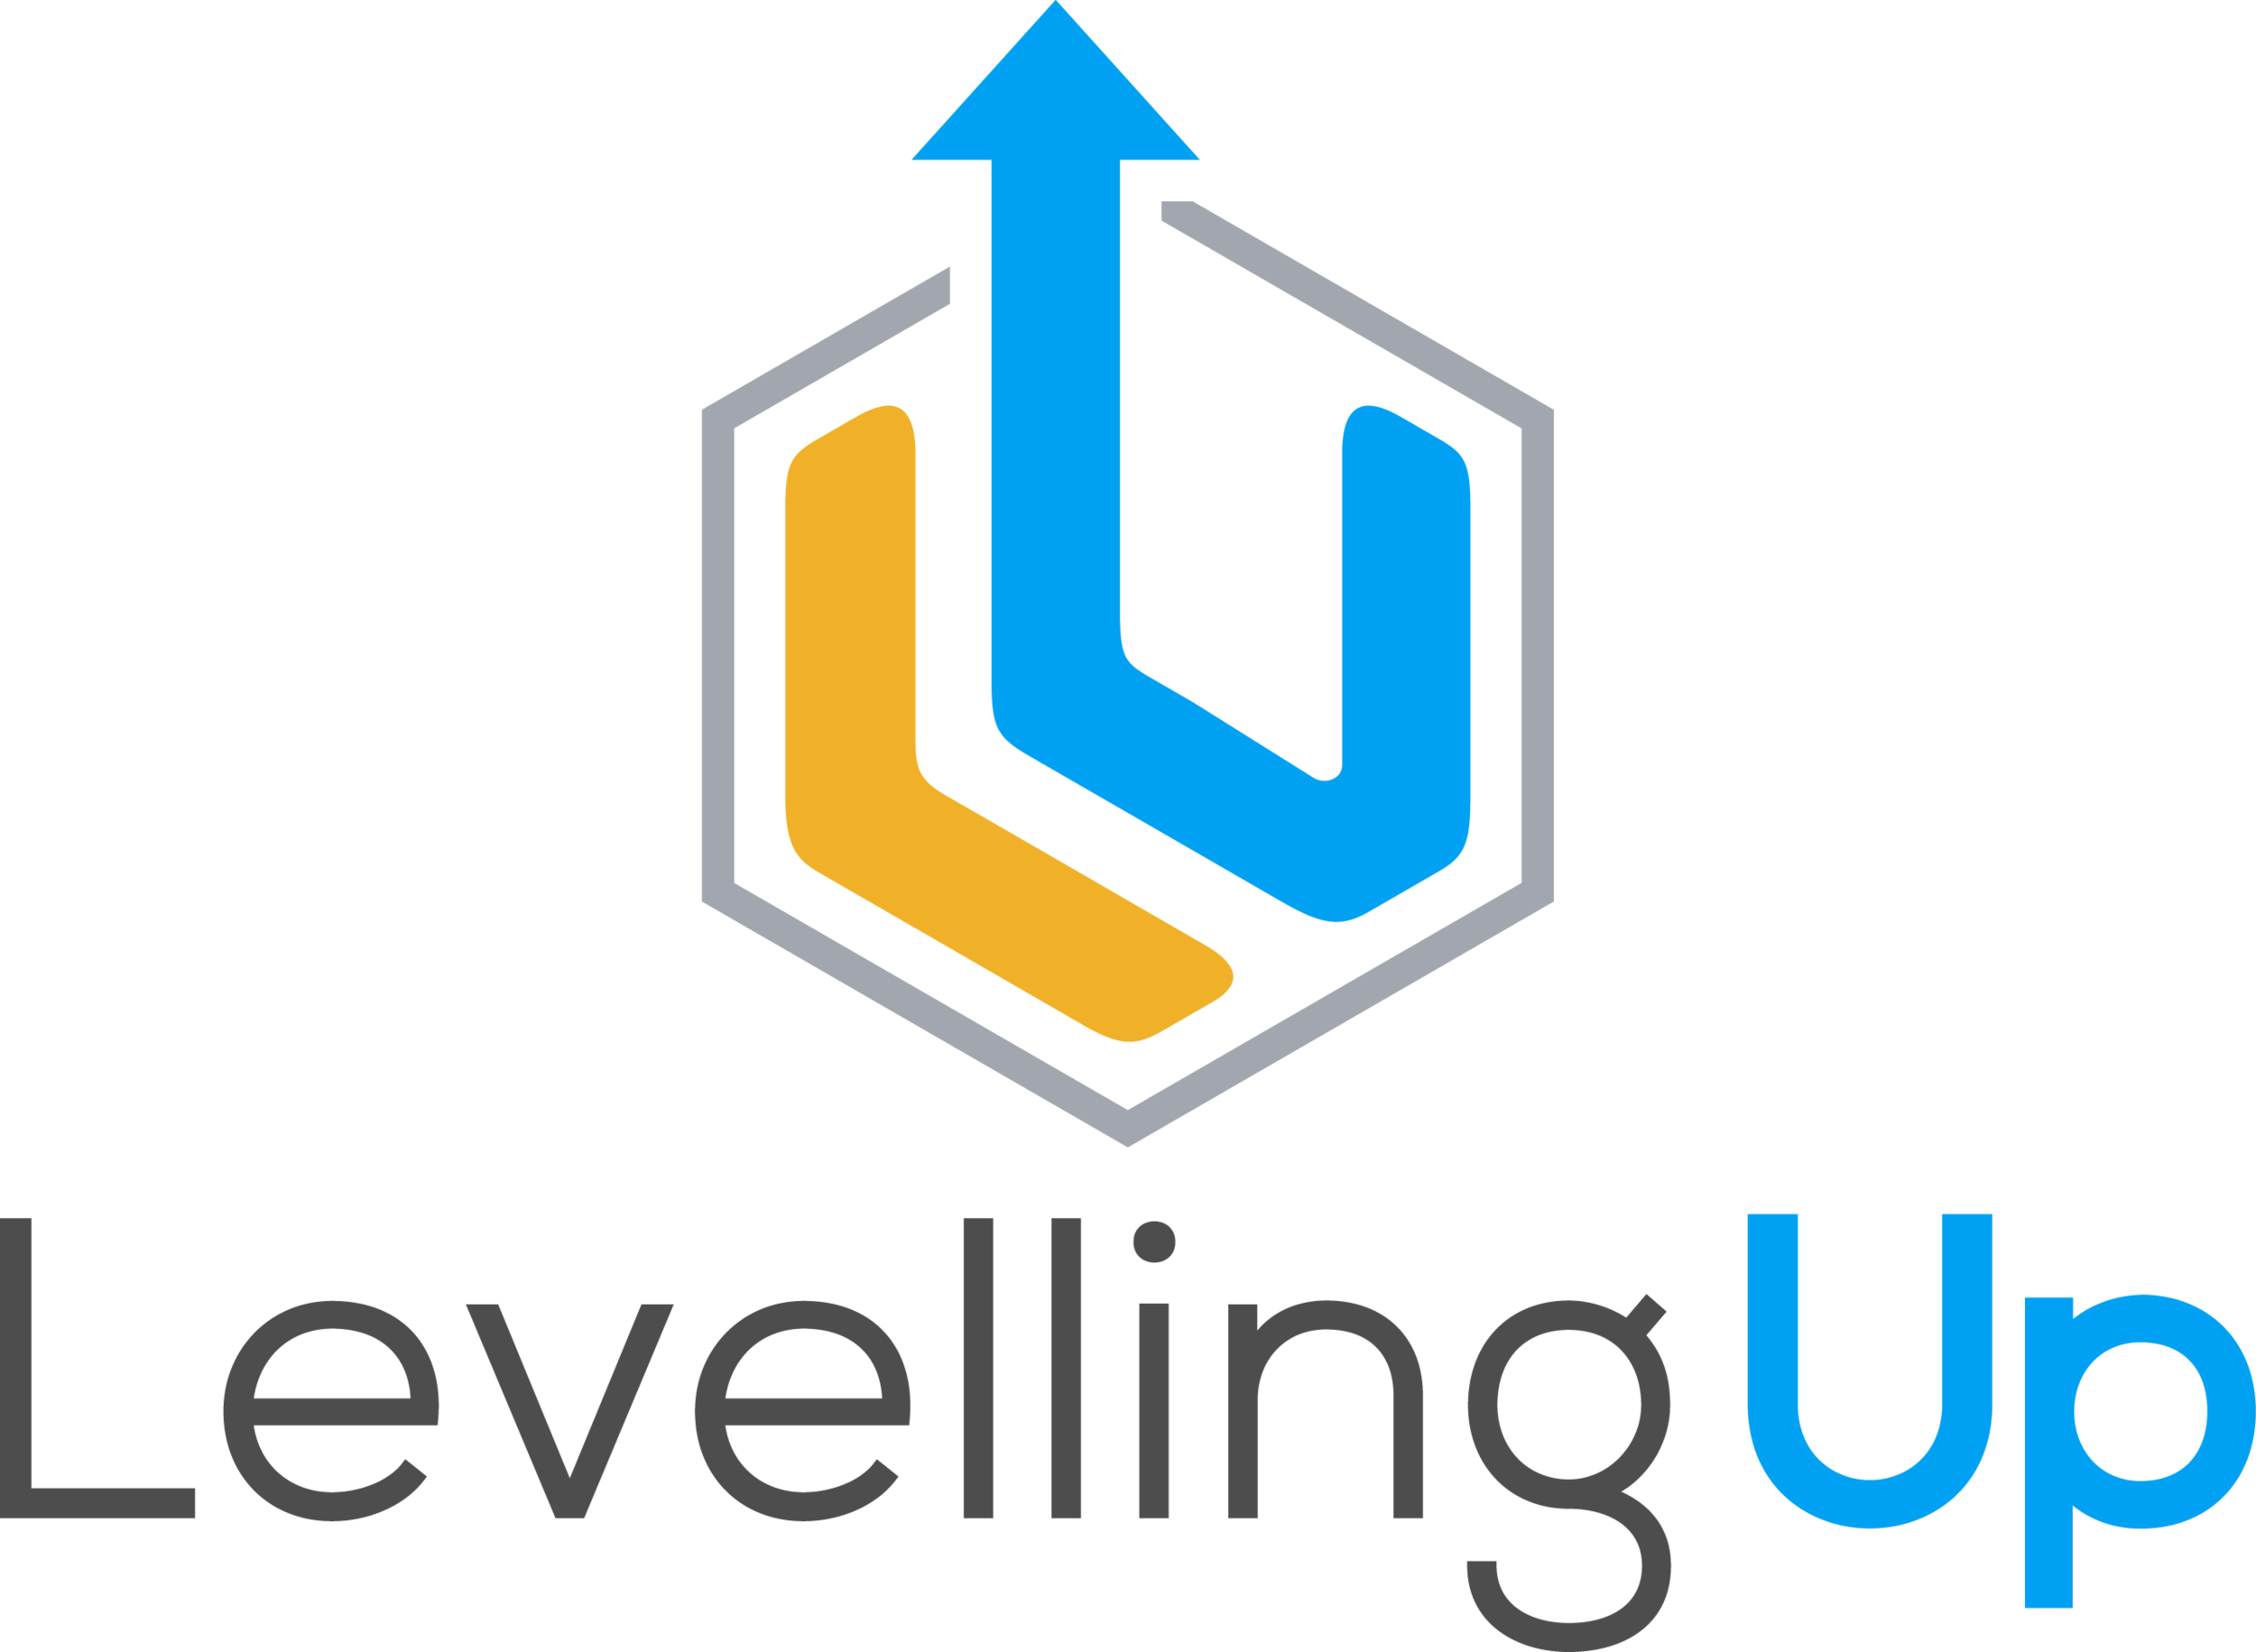 90% of startups fail. But NOT yours! LevellingUp helps you: master critical leadership & business skills faster than ever before, join a high-impact small group of peers, LevelUp with interactive coaching & feedback from an expert, meet weekly by videoconference, master the entrepreneur skills you need. LevelUp now at www.LevellingUp.ca